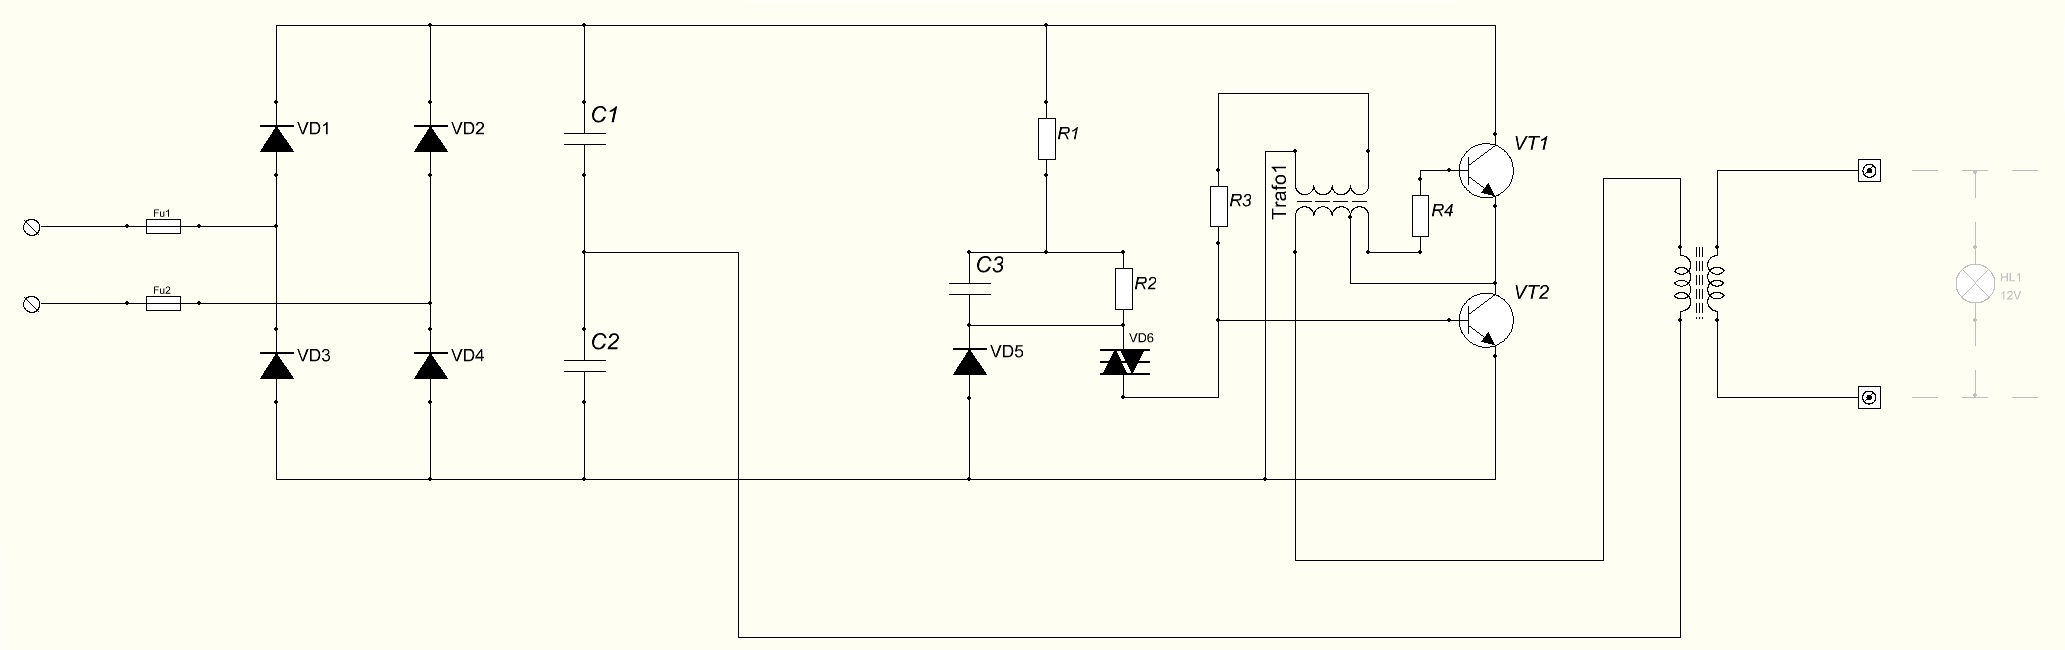 File:Wiring diagram of power supply for halogen lamps.JPG